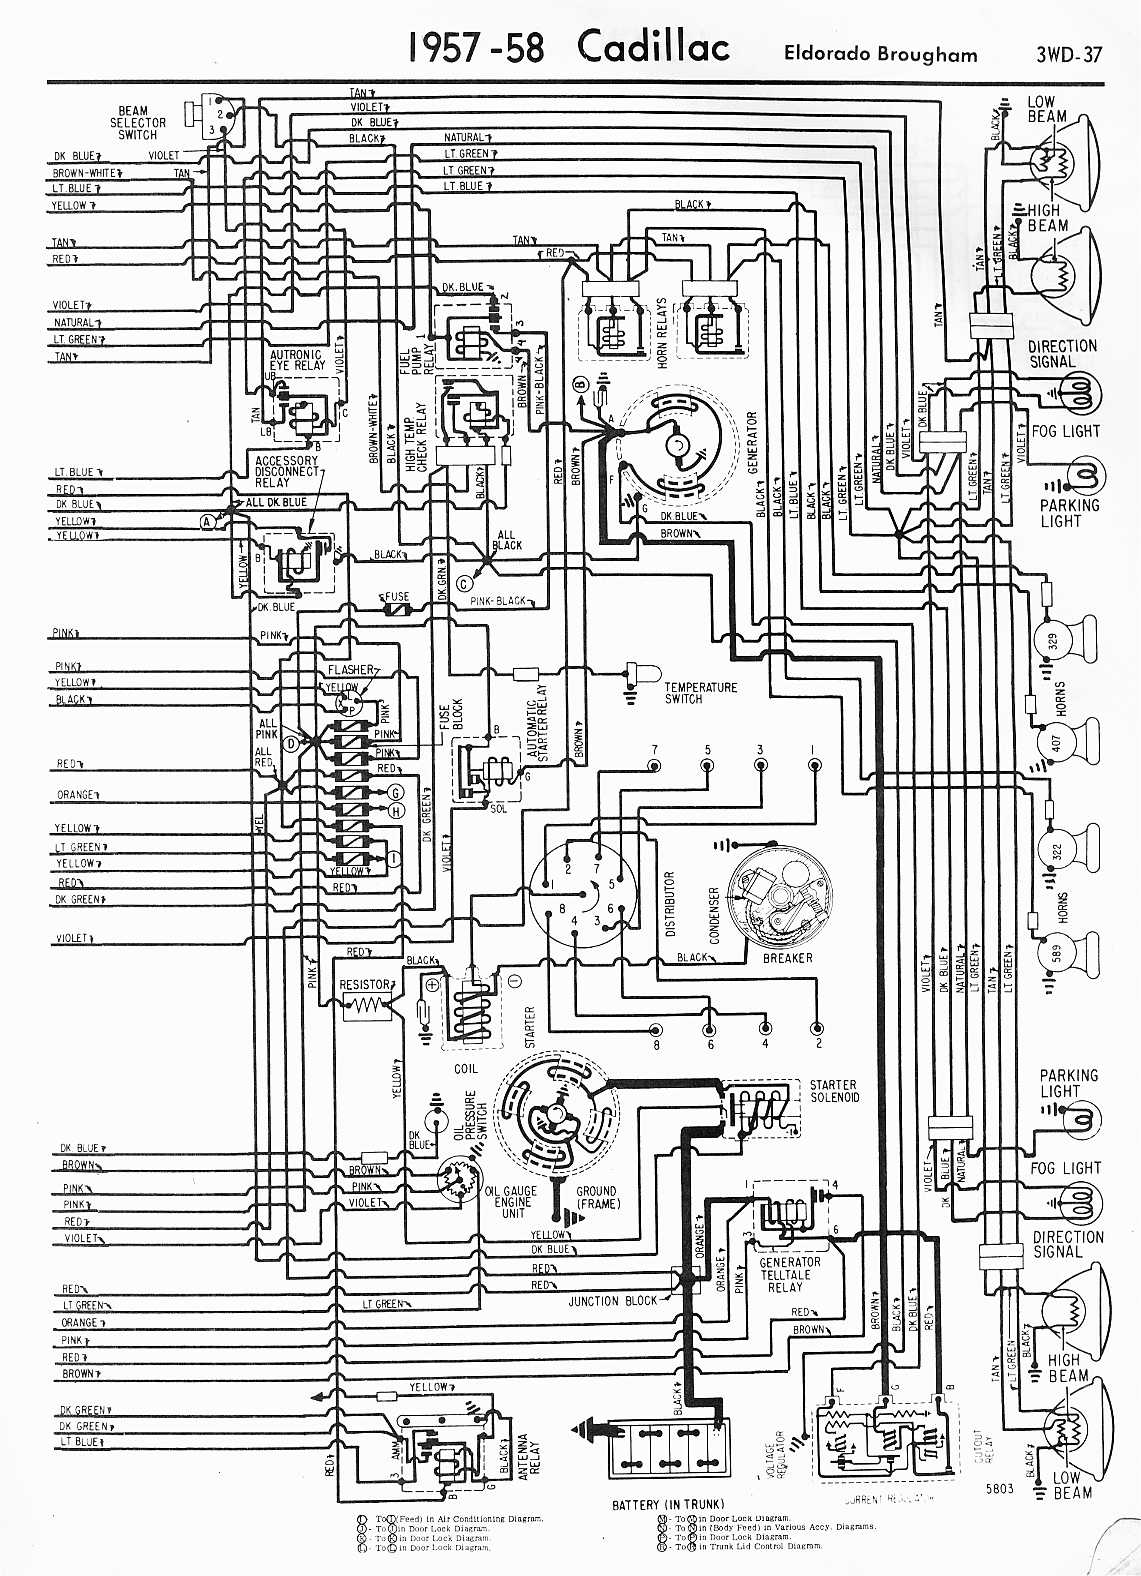 1969 Cadillac Fuse Box Diagram Manual Guide Wiring 86 Park Avenue Diagrams 1957 1965 Rh Oldcarmanualproject Com 2008